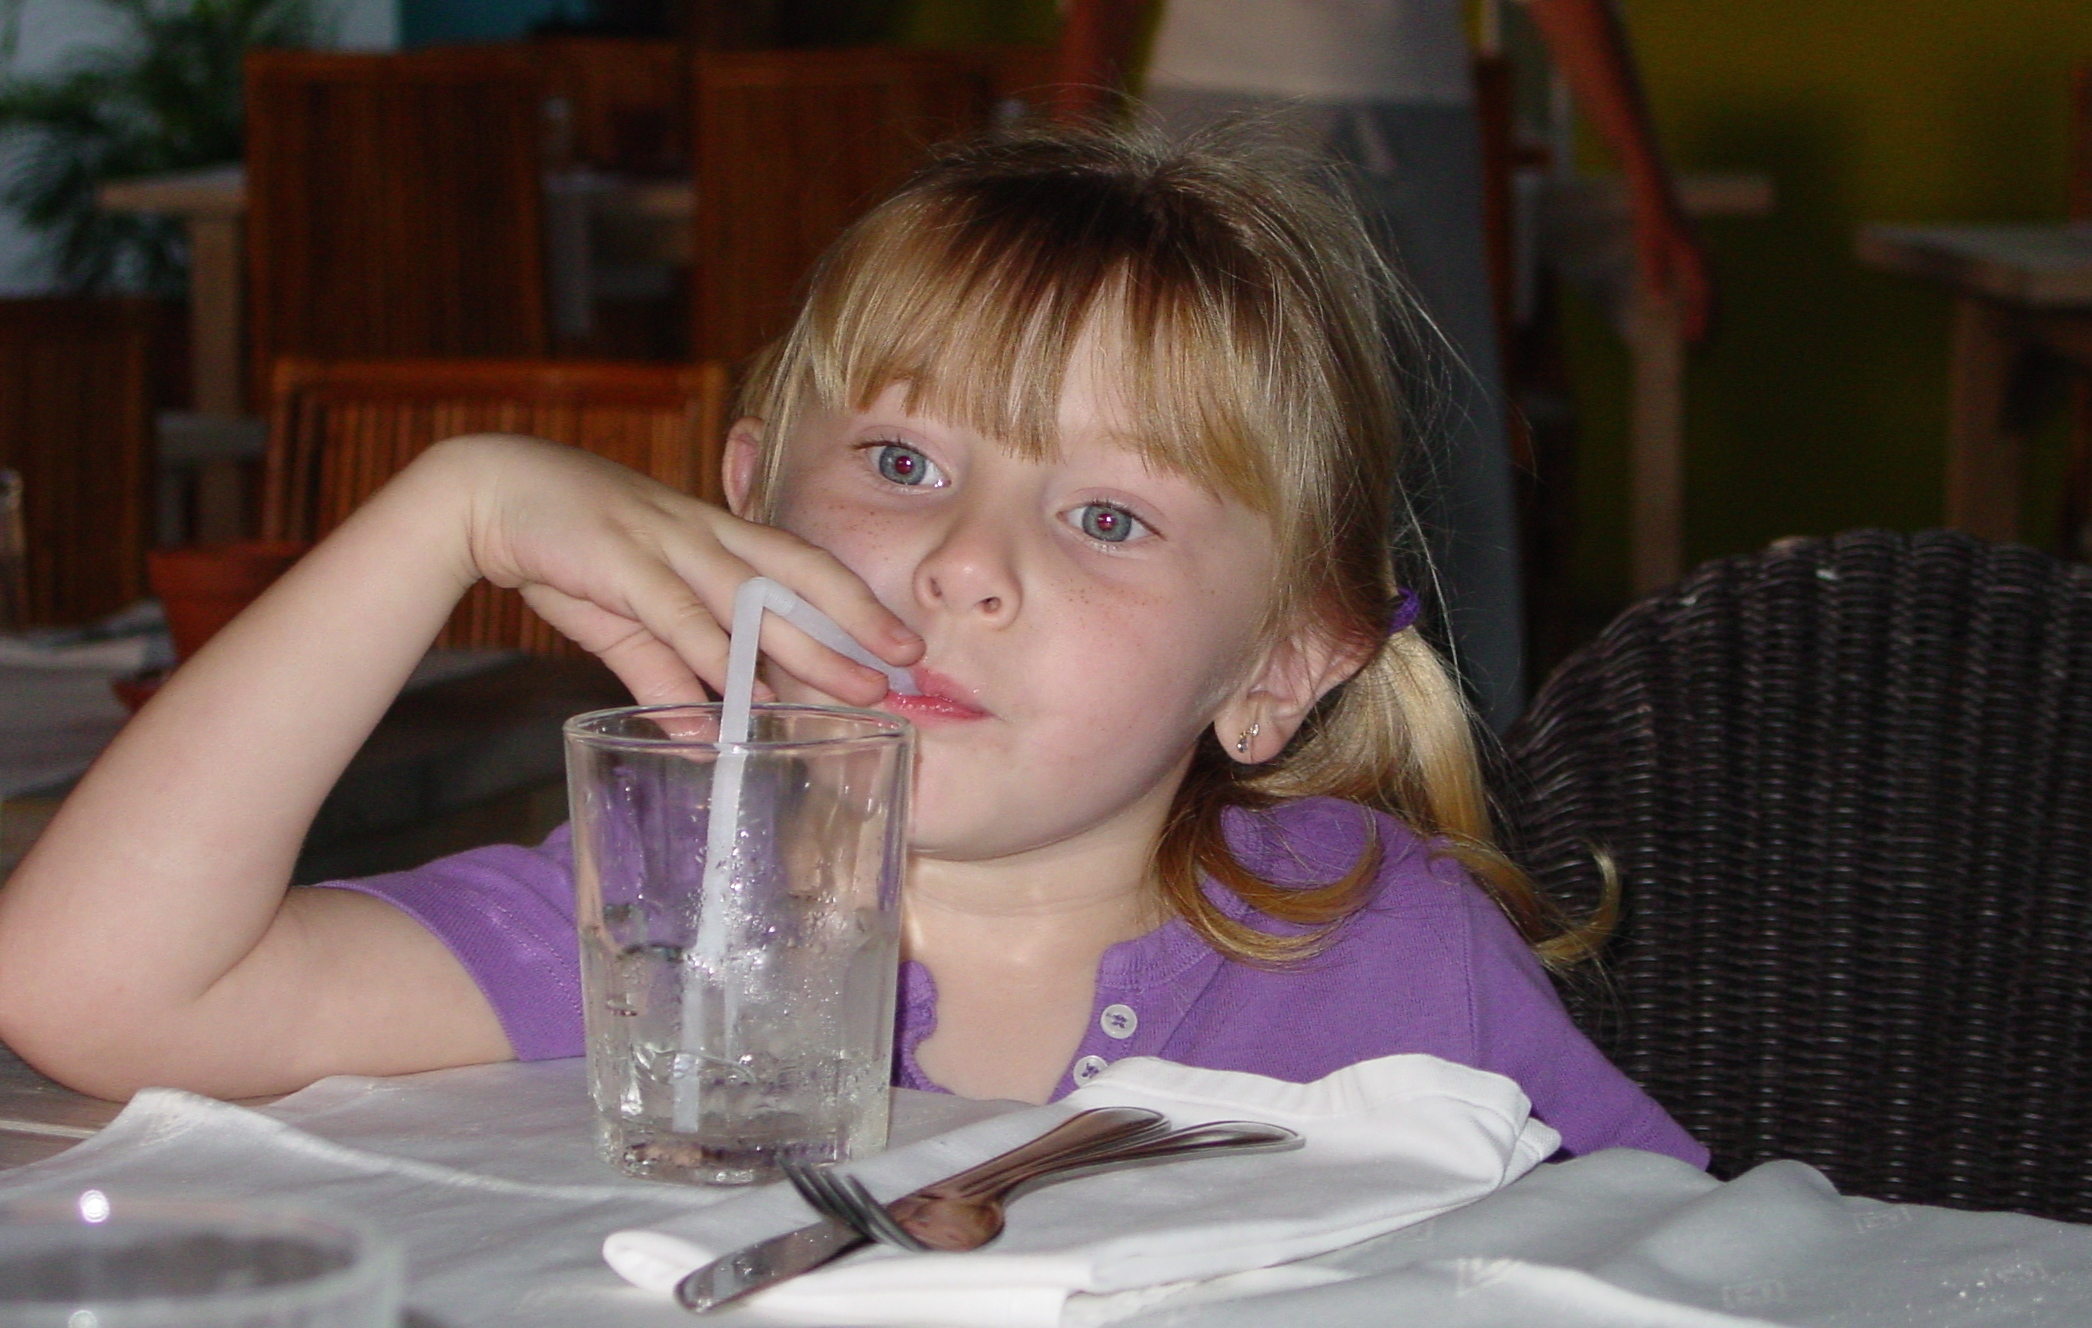 a cute little girl at the dinner table drinking a cool glass of water.